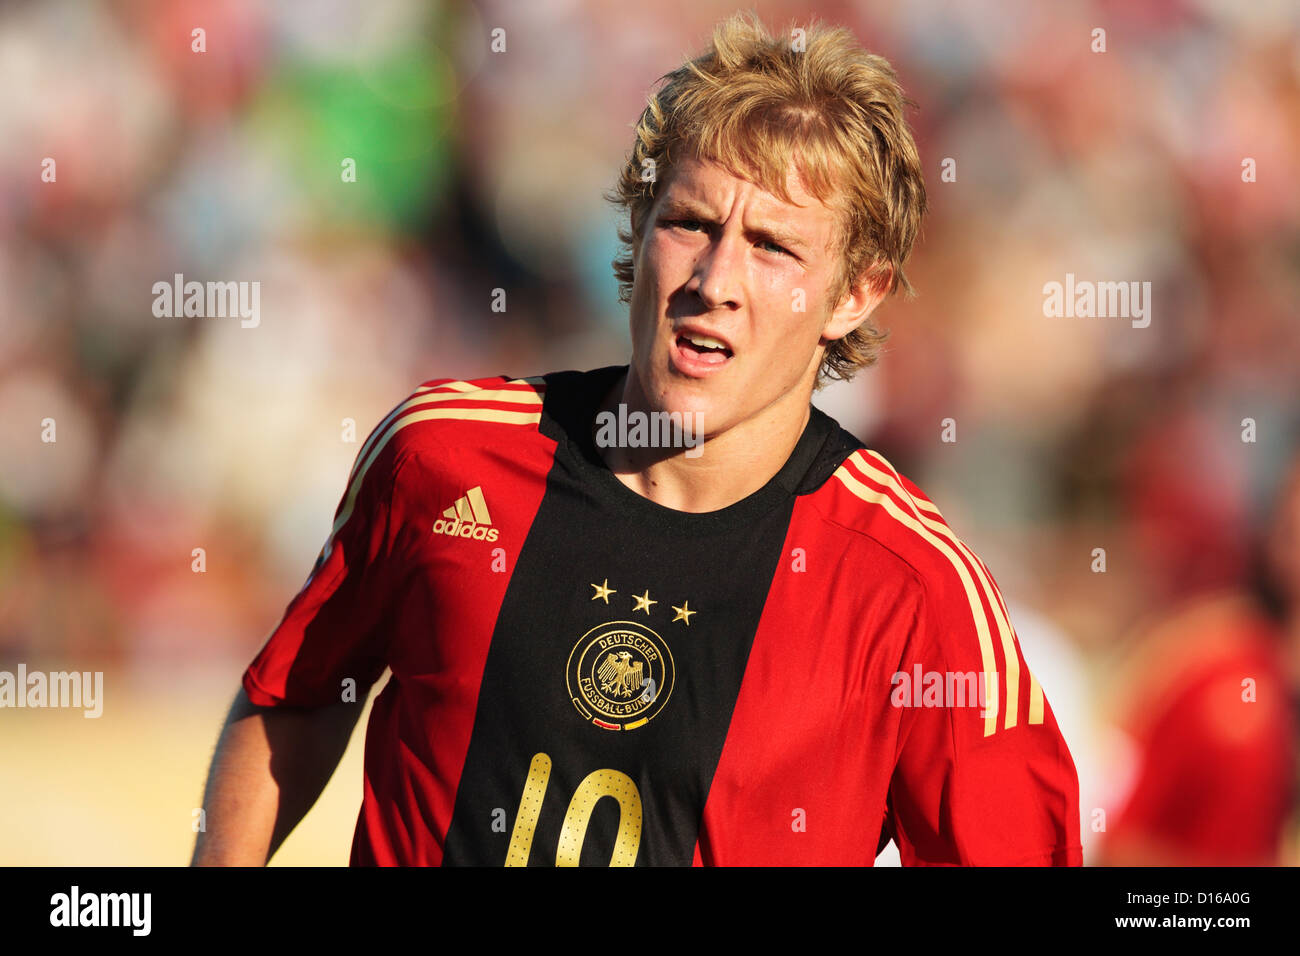 Holtby High Resolution Stock Photography And Images Alamy